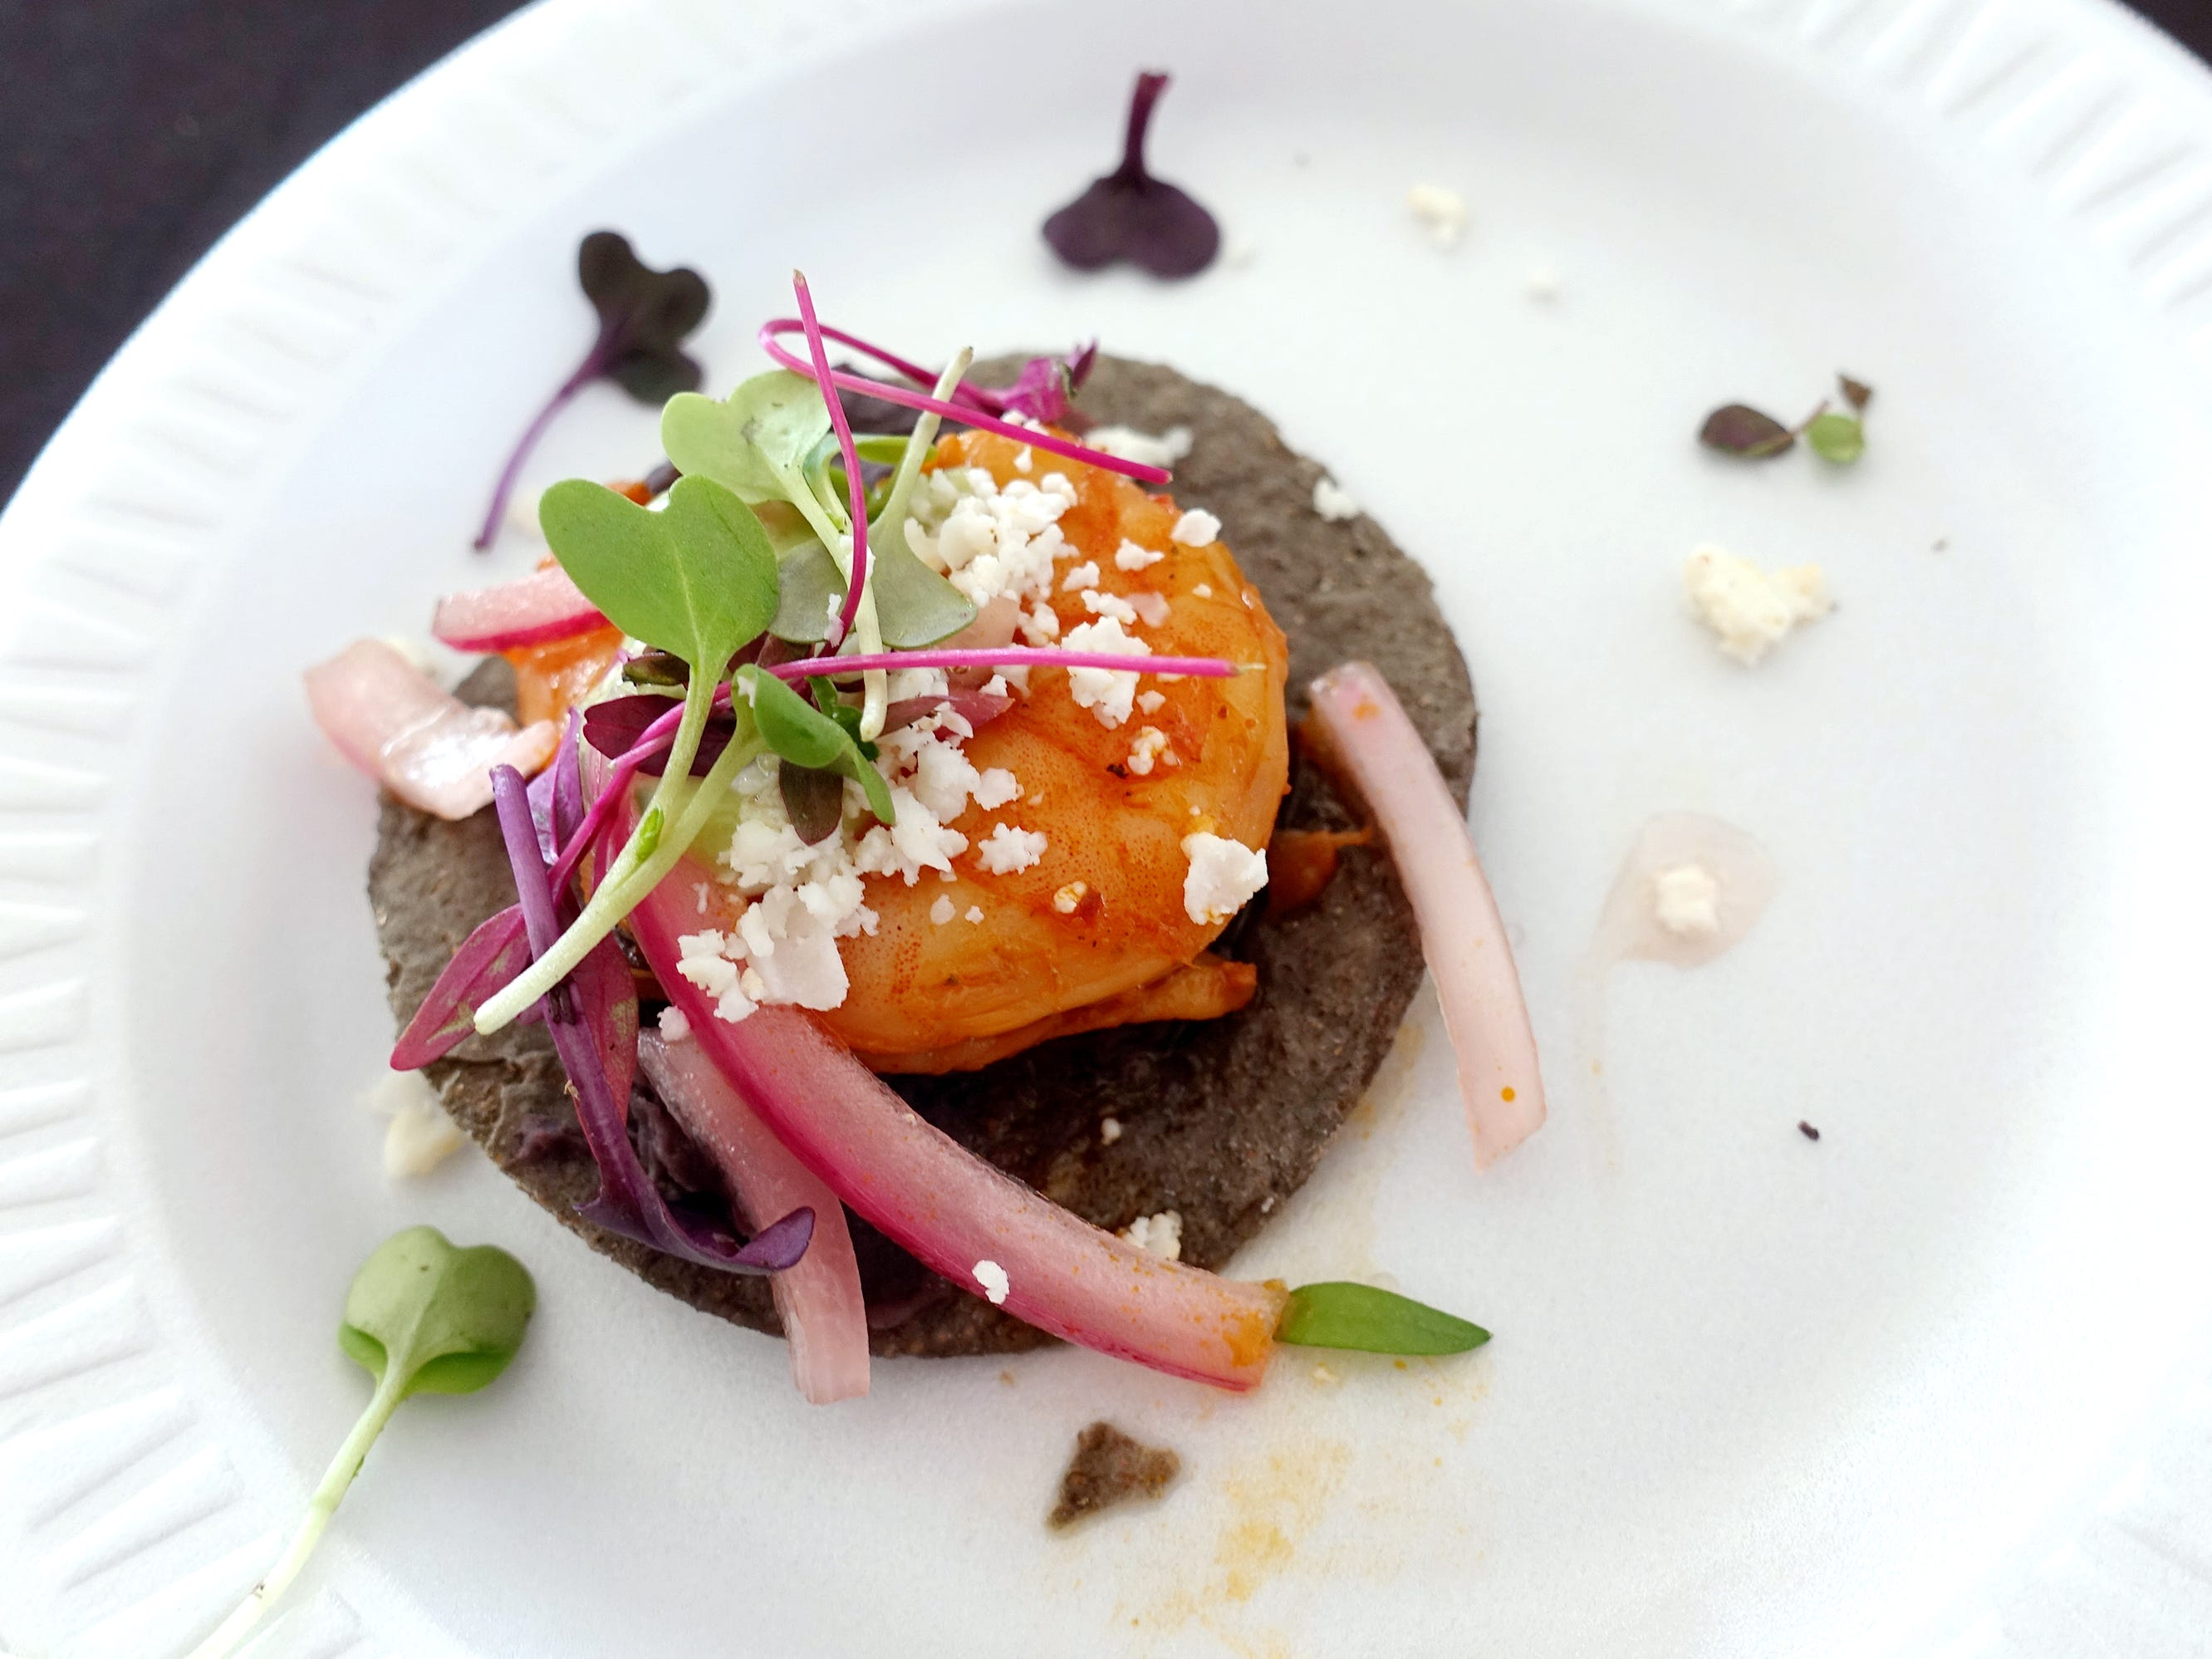 Stone ground blue corn adobo shrimp tostada with refried black beans, avocado crema and pickled red onion from Barrio Queen at azcentral Wine & Food Experience 2018 at WestWorld of Scottsdale, Saturday, Nov. 3, 2018.